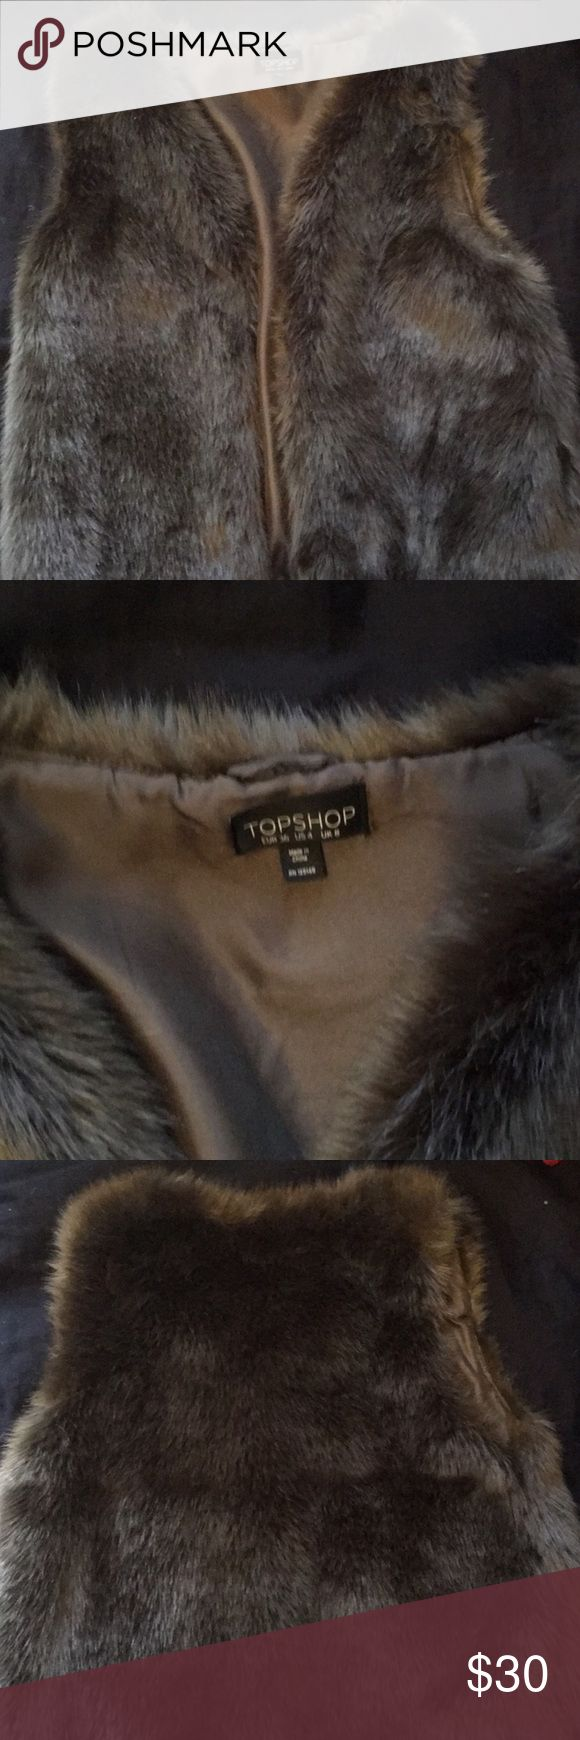 Topshop fur vest Perfect condition Topshop fur faux vest!! Very soft size 4! Purchased from another posher but doesn't look good on me! Topshop Jackets & Coats Vests